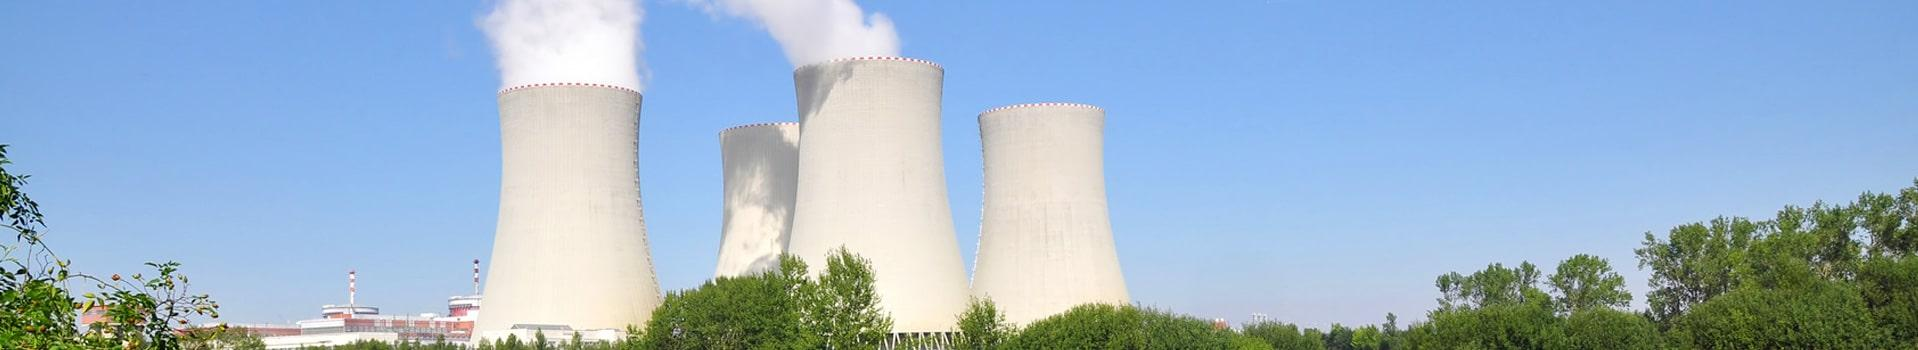 nuclear power plant fall protection systems